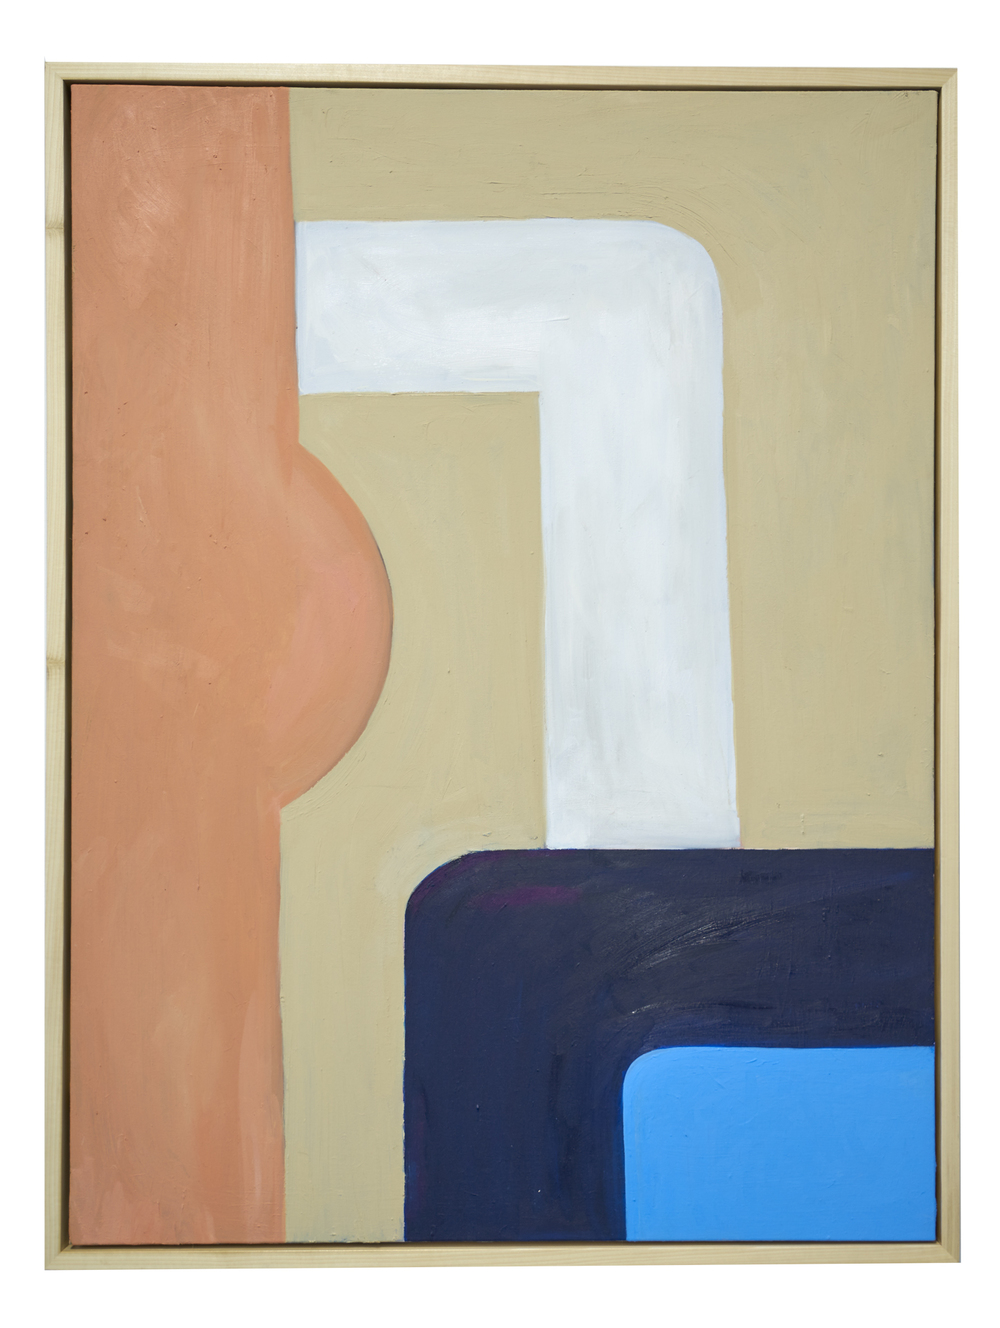 Wearing the inside out, 2015  oil on canvas  48 x 36 inches (121.92 x 91.44 cm)